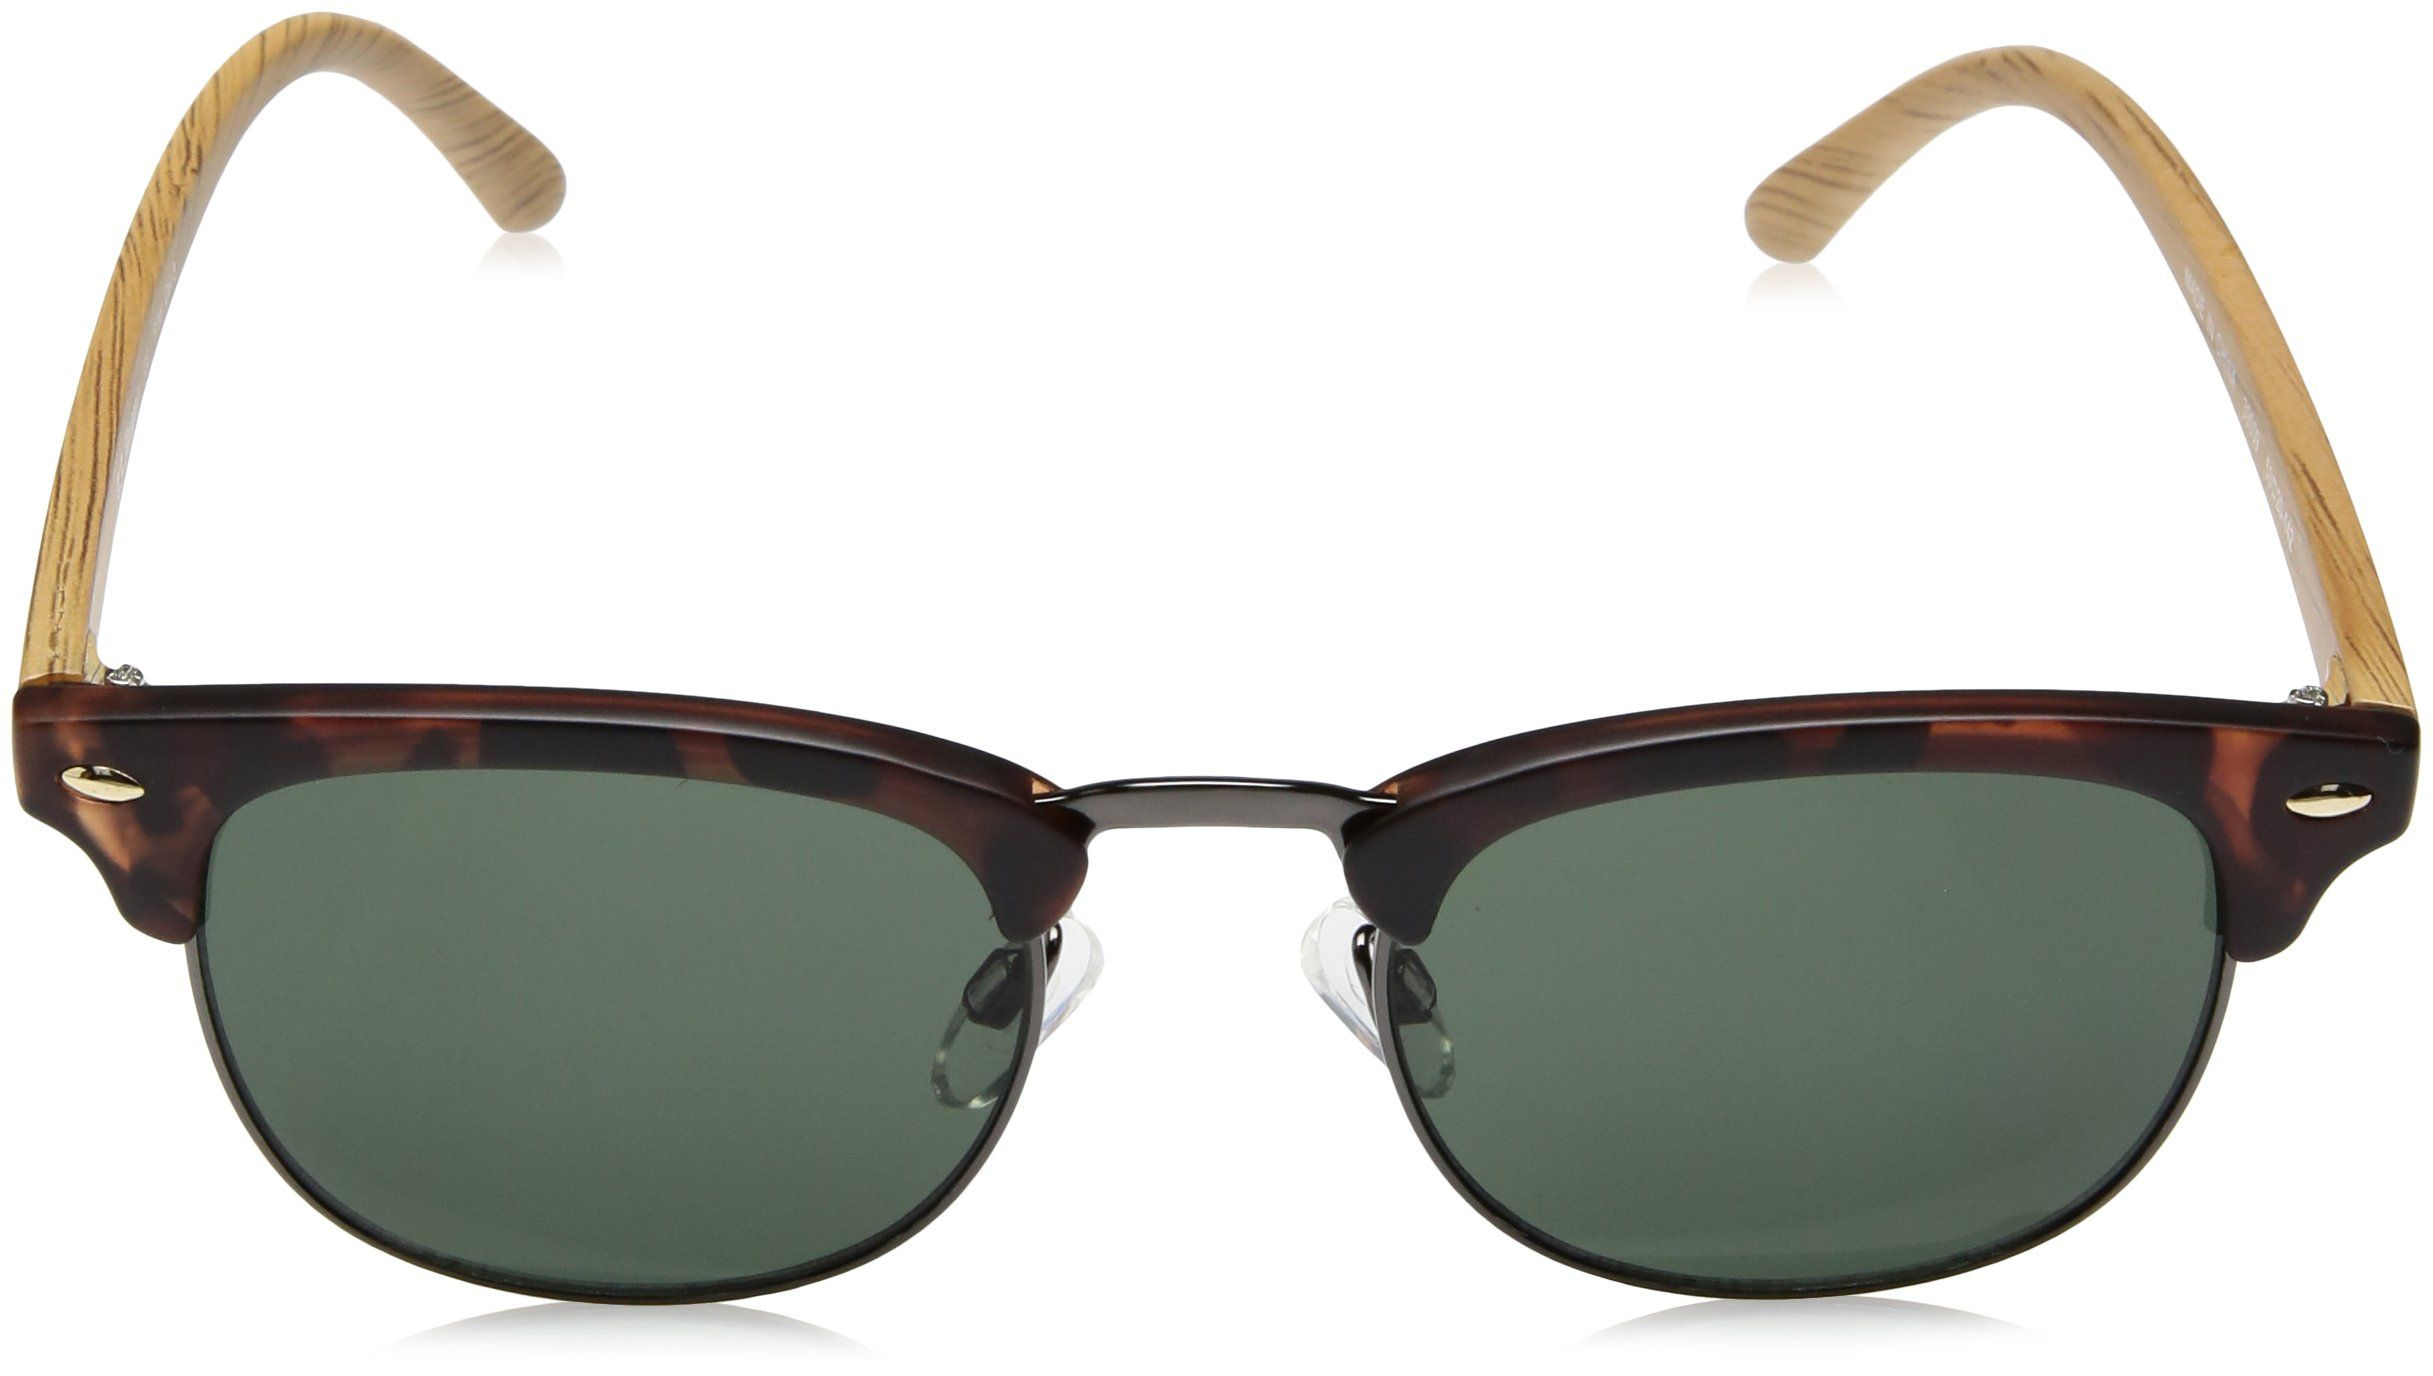 dfb7e1f2845 A.J. Morgan Kent Square Sunglasses Matte Tortoise 50 mm    Click on the  image for